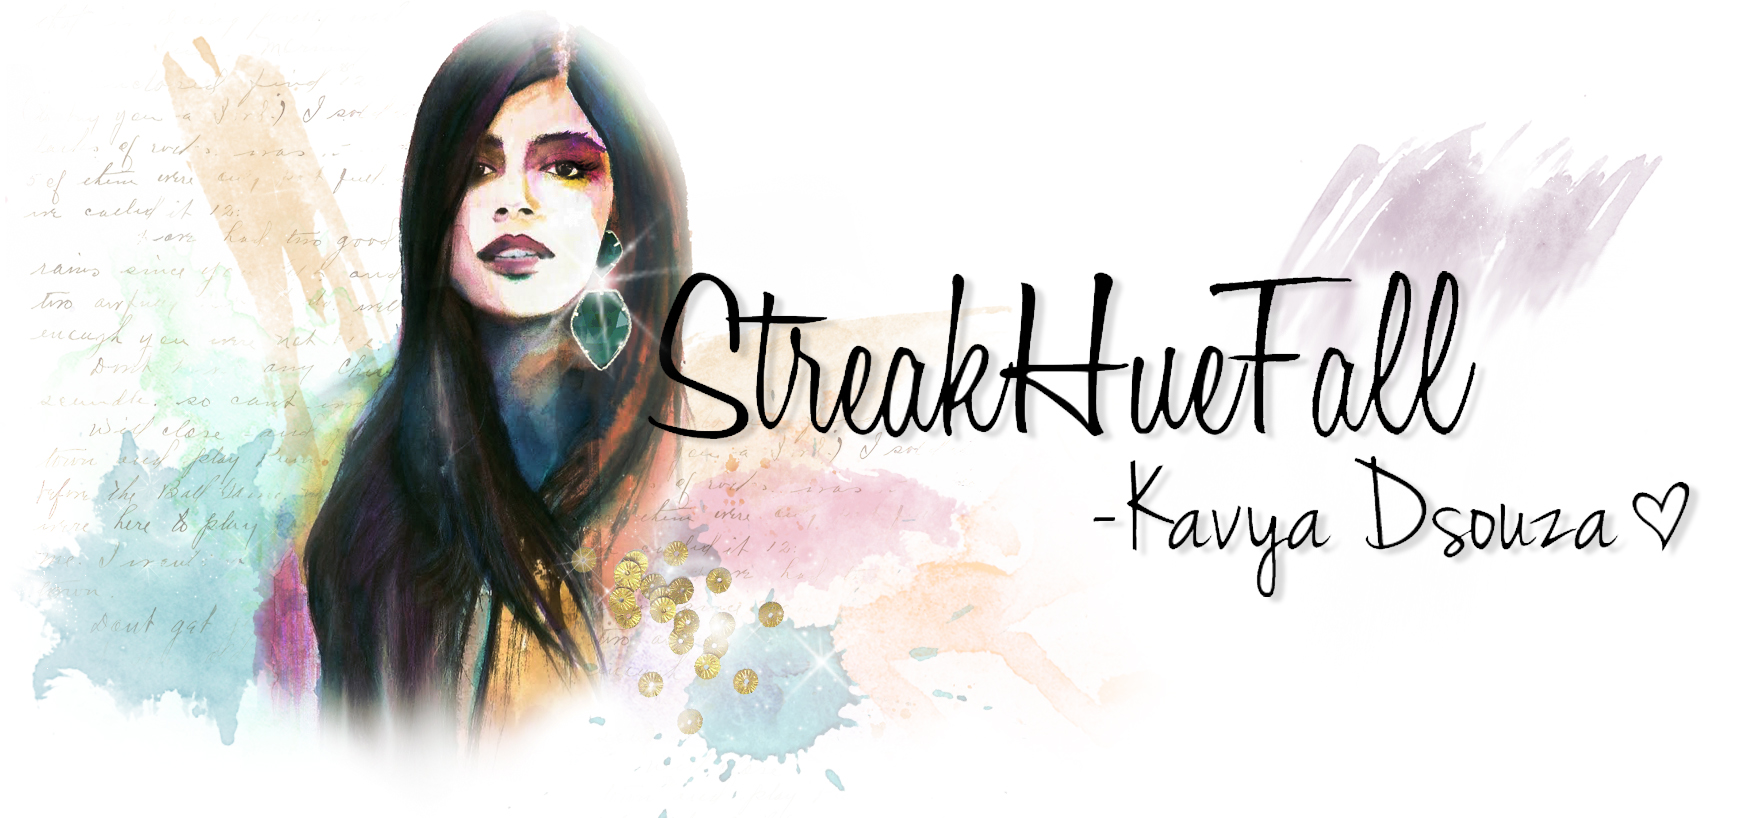 StreakHueFall | An Indian Fashion, Beauty and Personal Style Blog